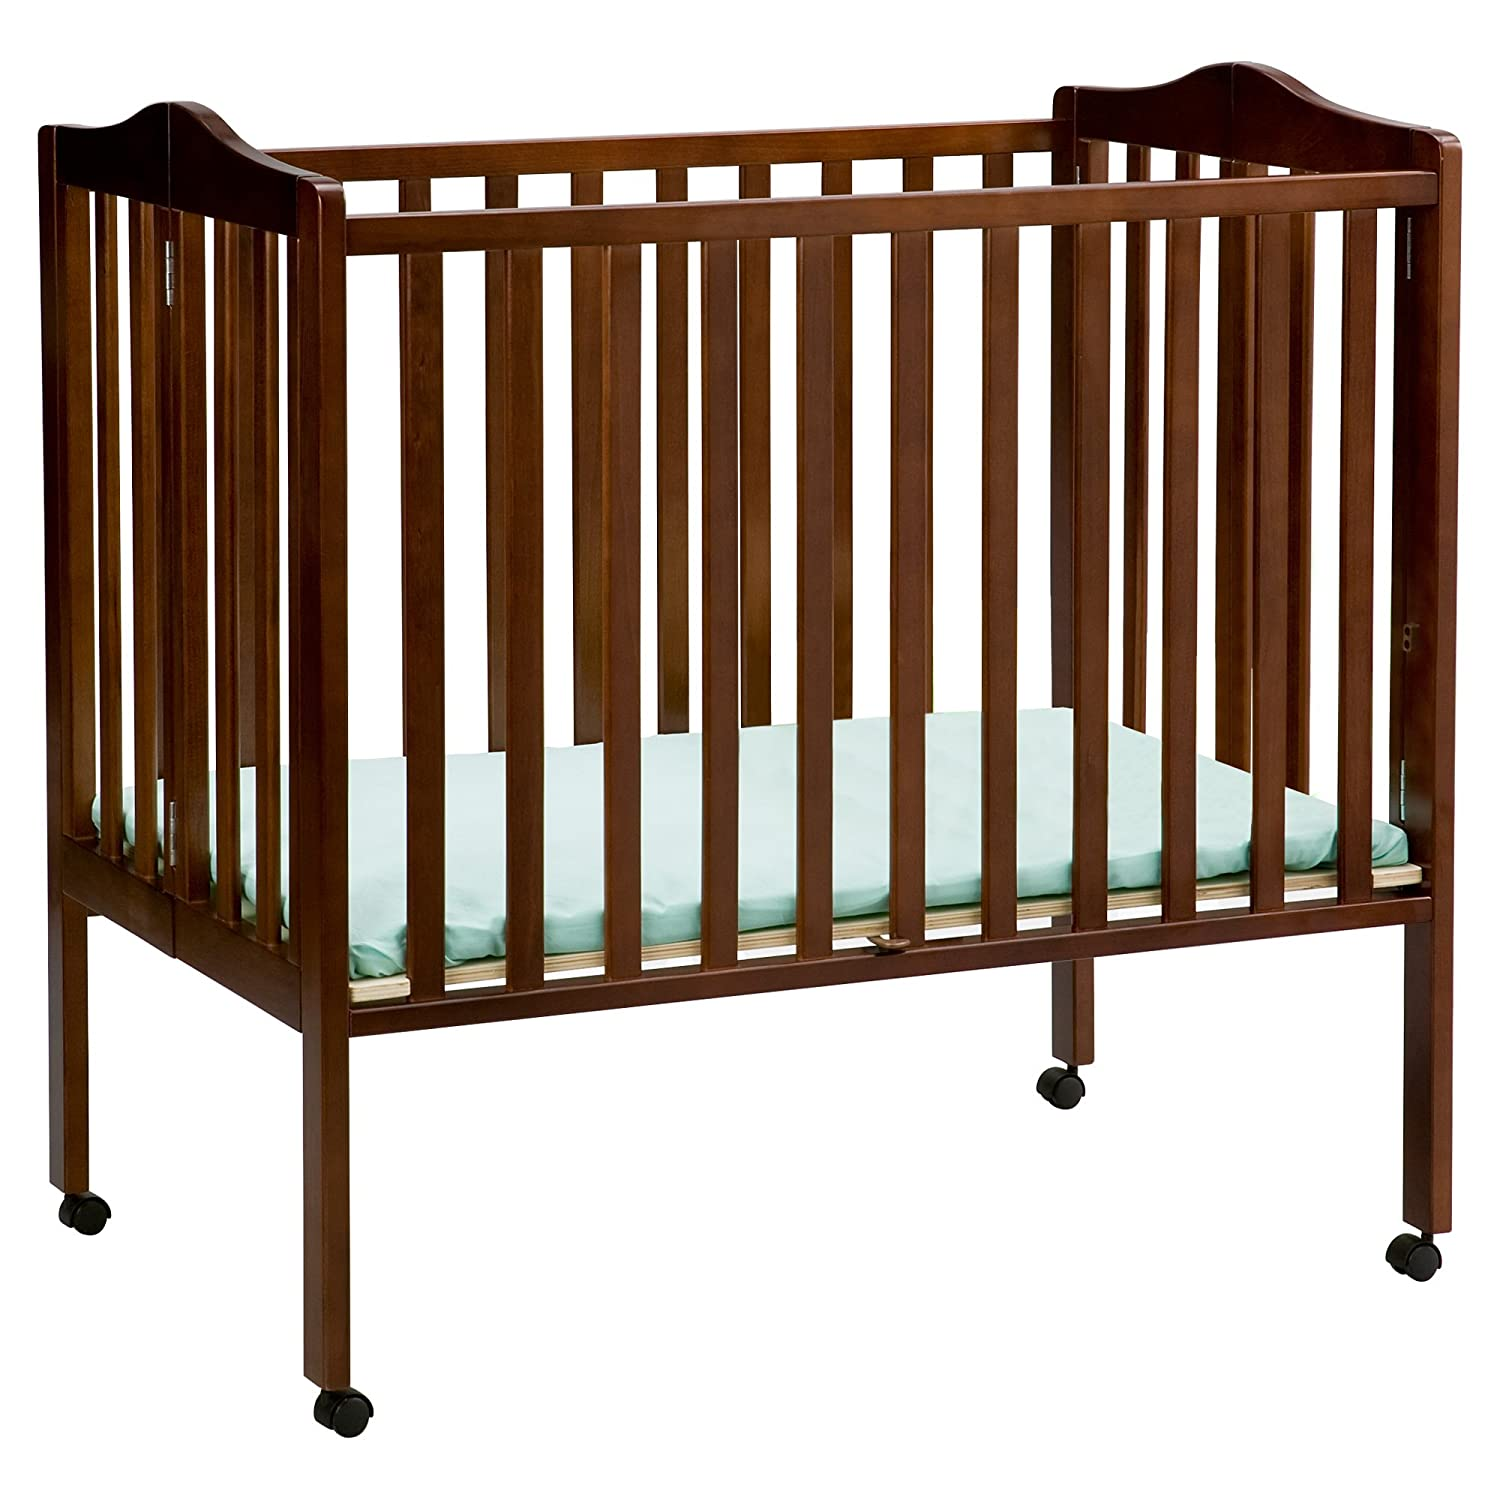 Top 10 Best Selling Cribs Of 2013 It 39 S Baby Time